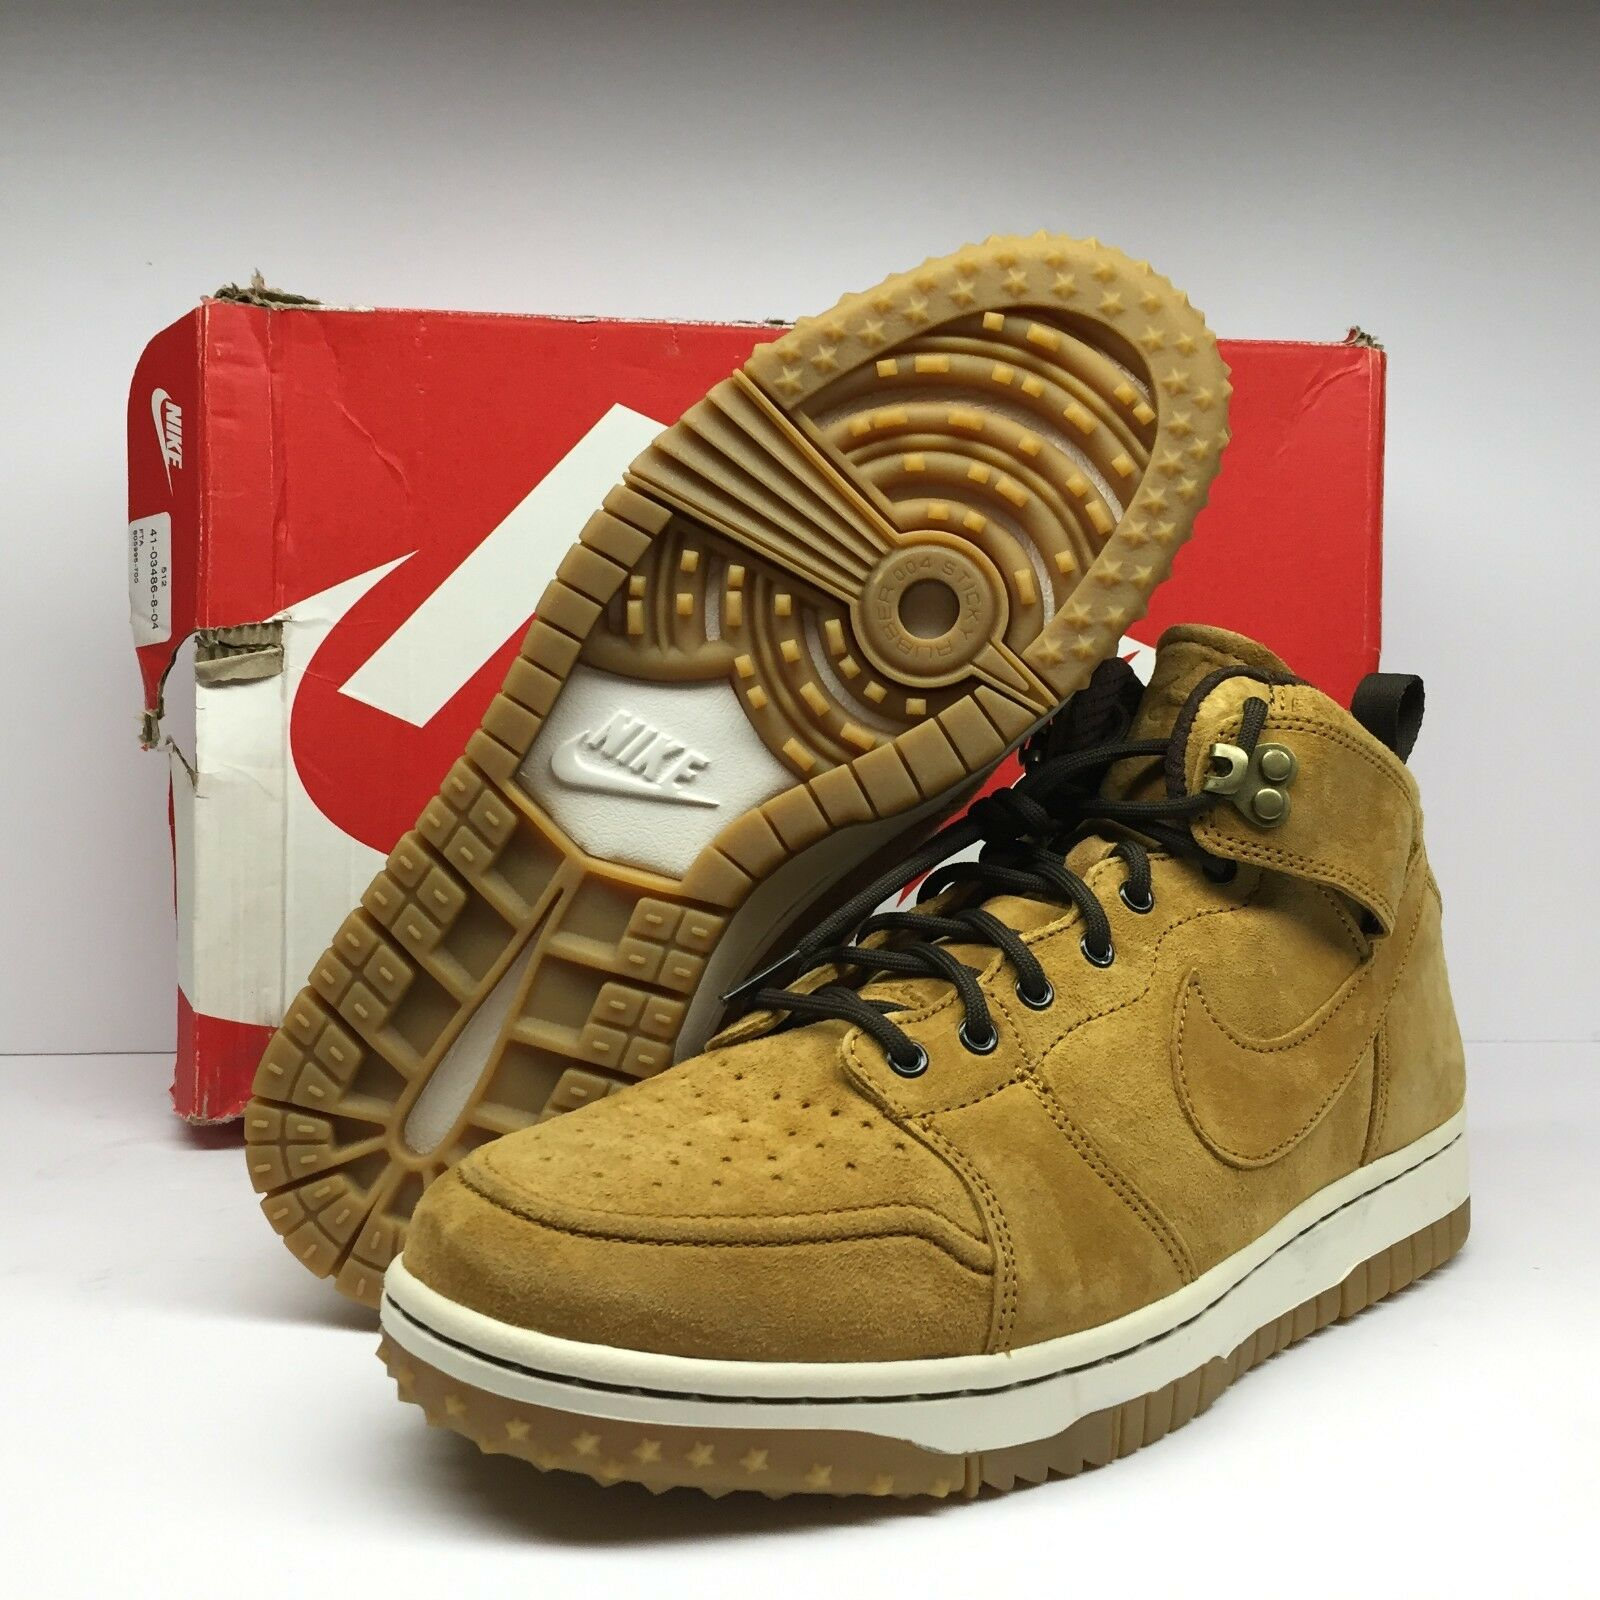 NIKE Men's Dunk Comfort Sneakerboot Wheat Sail Baroque Brown 805995-700 SZ 9